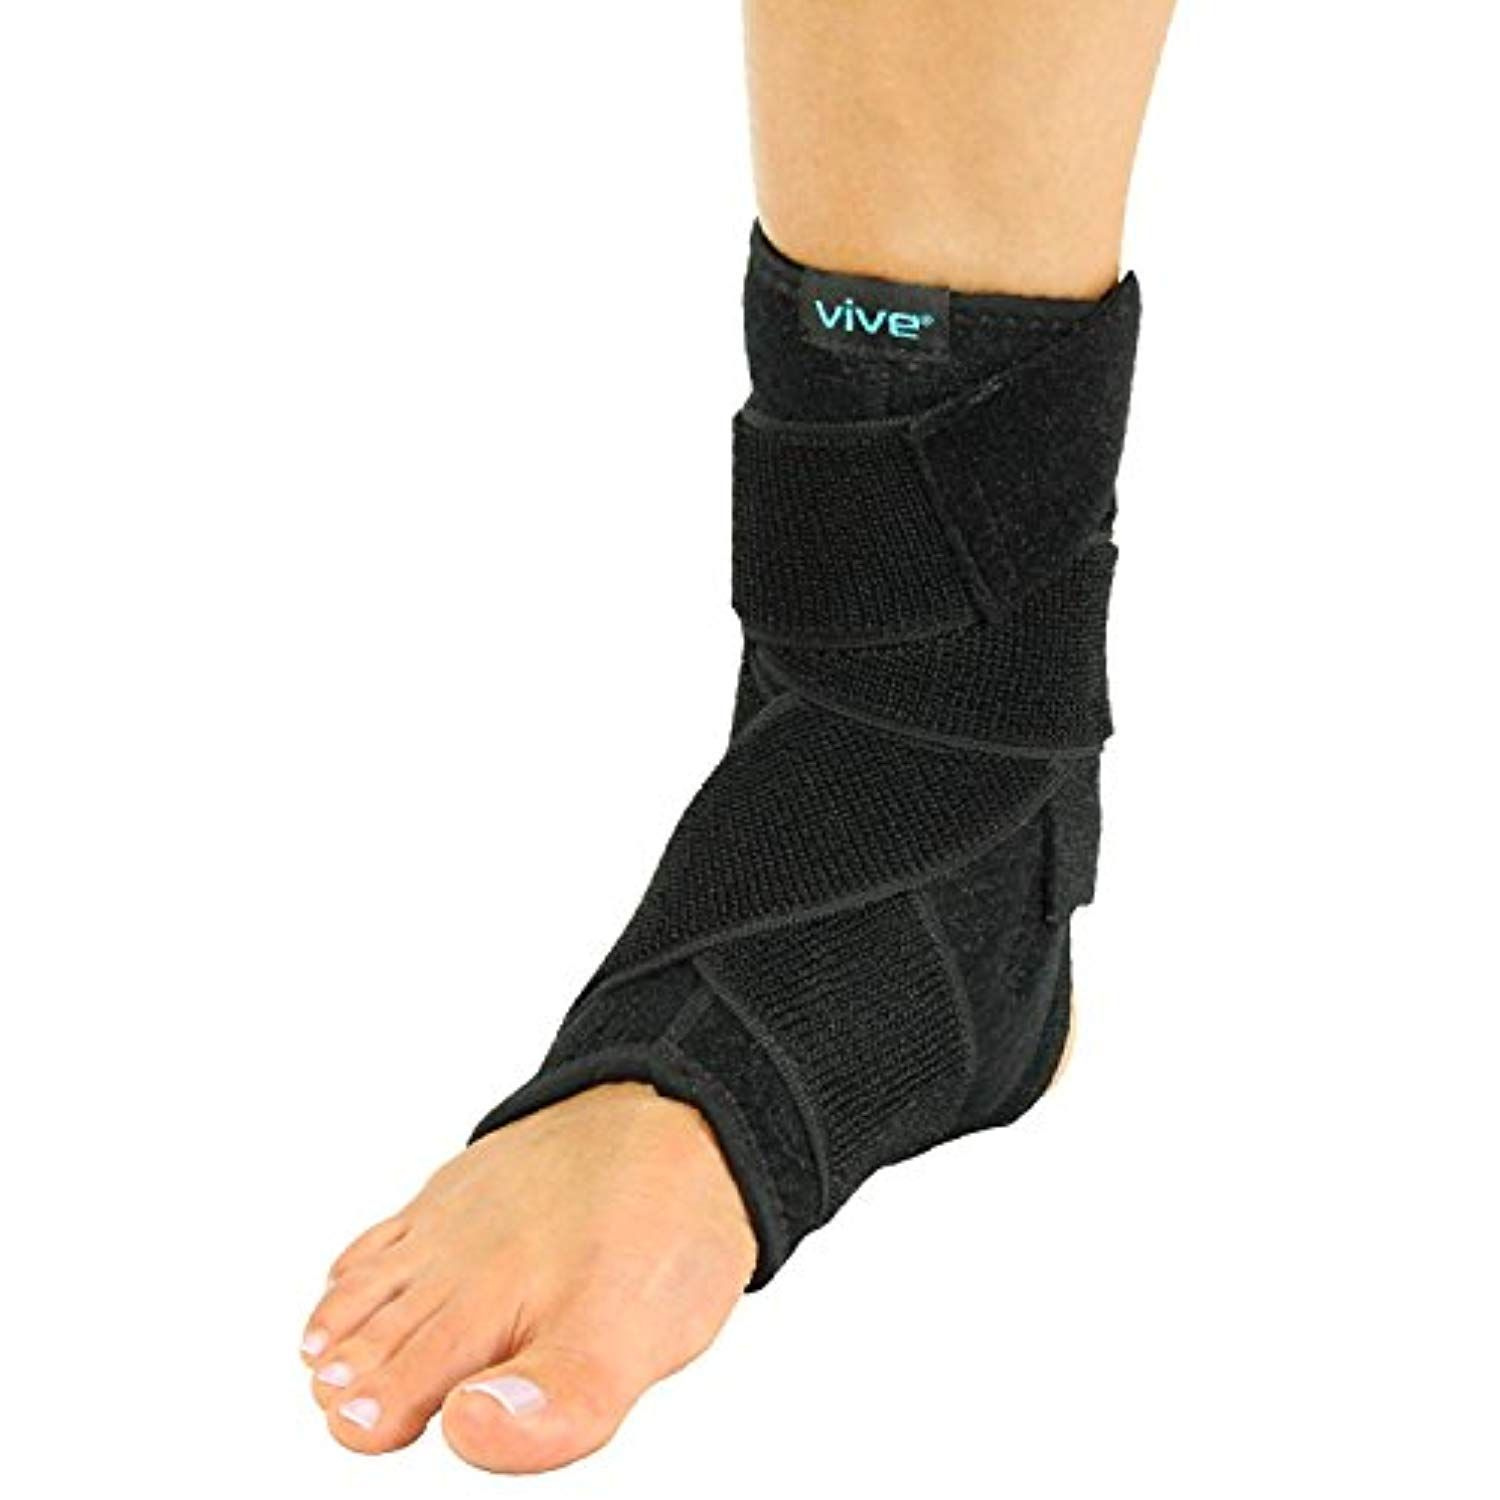 Ankle Stabilizer Brace By Vive Neoprene Compression Wrap Support And Foot Protector For Tendonitis Sprained Ankles Run Ankle Braces Heel Spurs Running Feet